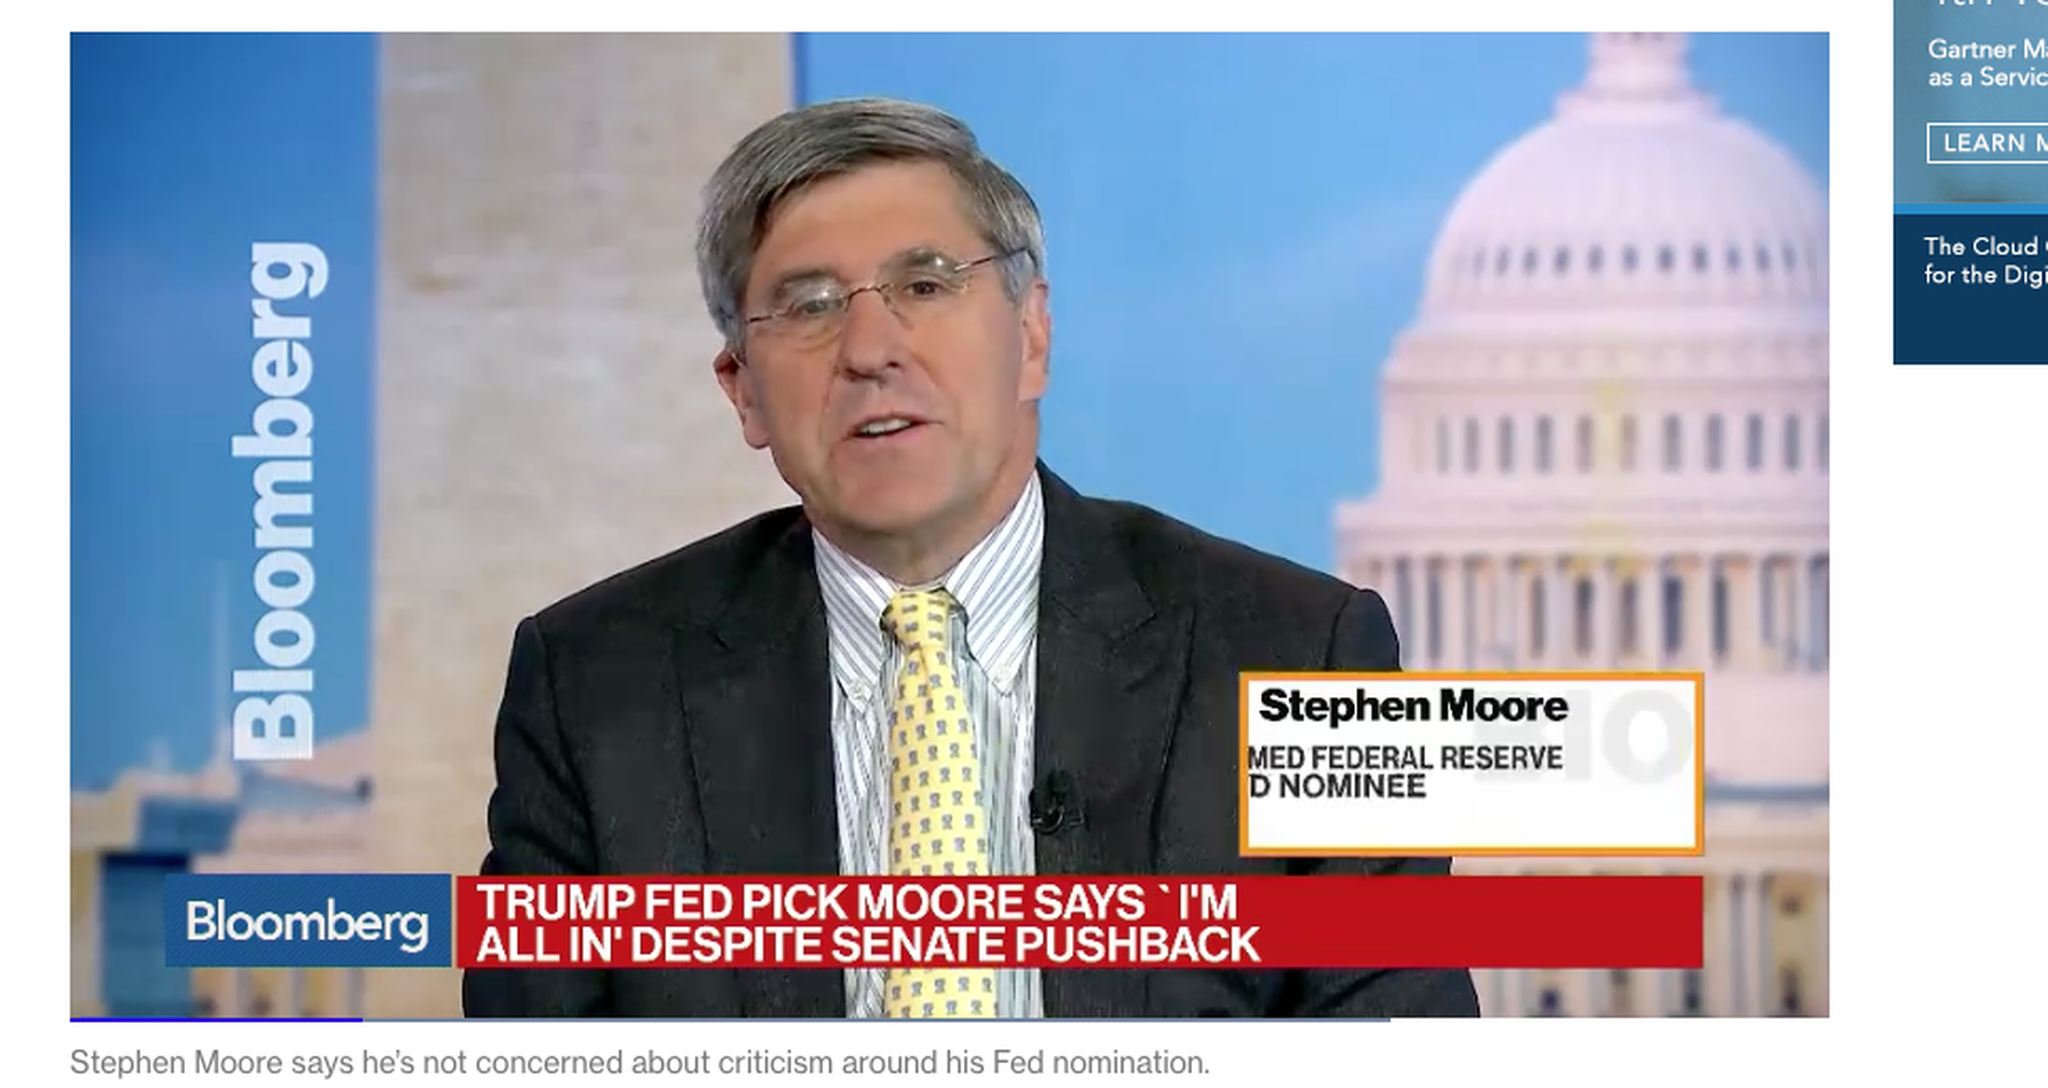 Stephen Moore withdraws from Fed nomination